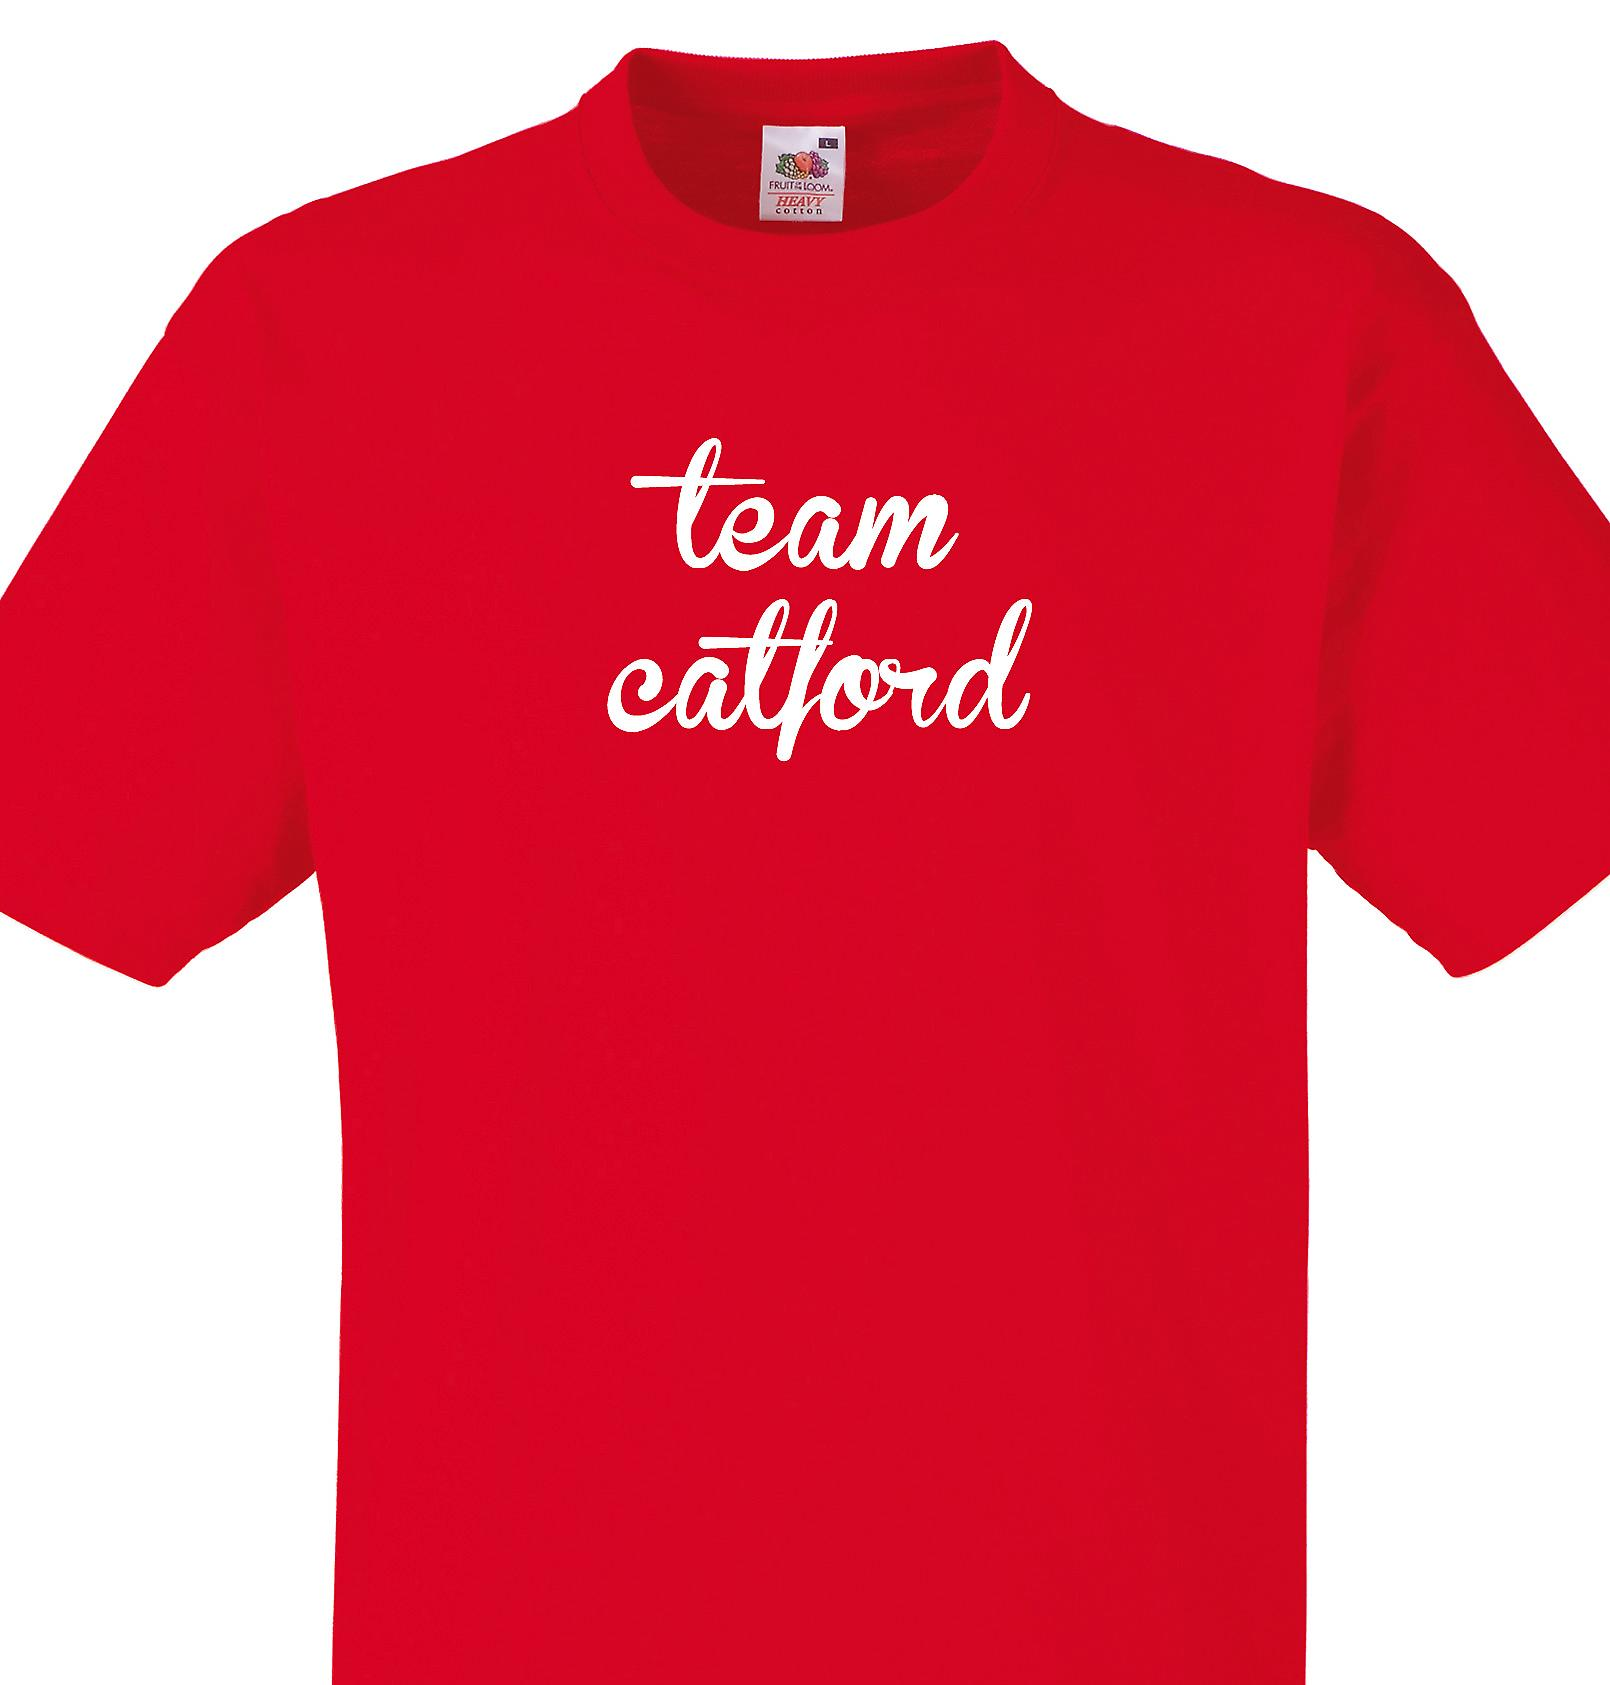 Team Catford Red T shirt